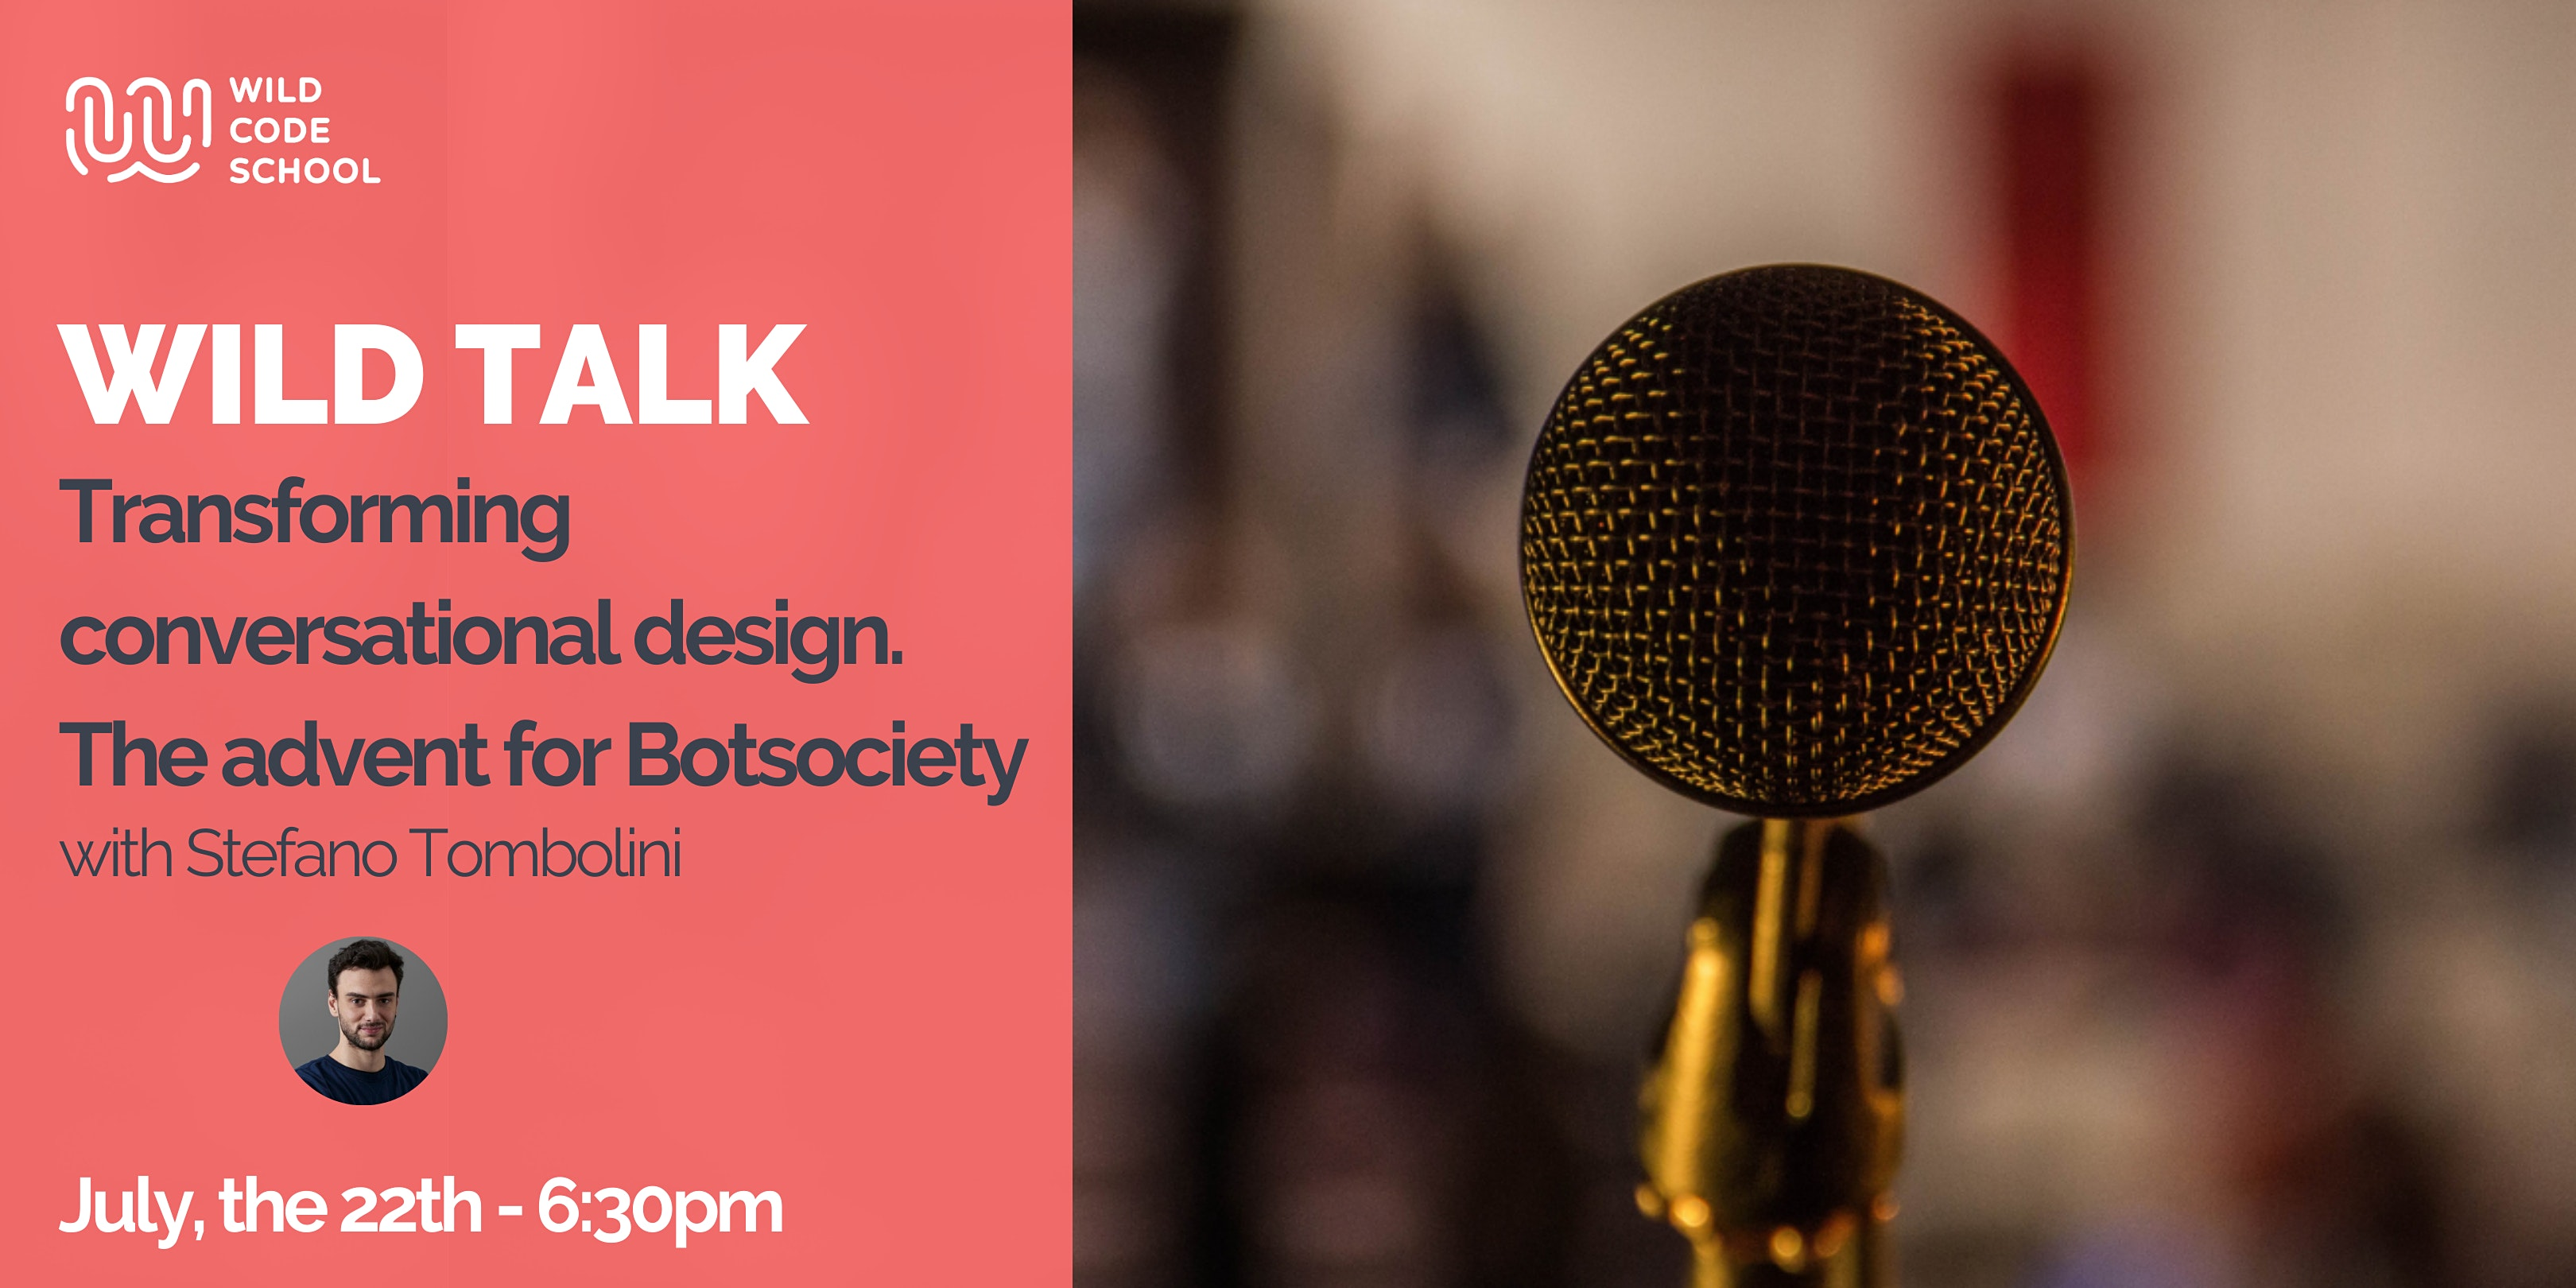 Wild Talk - Transforming conversational design. The advent for Botsociety